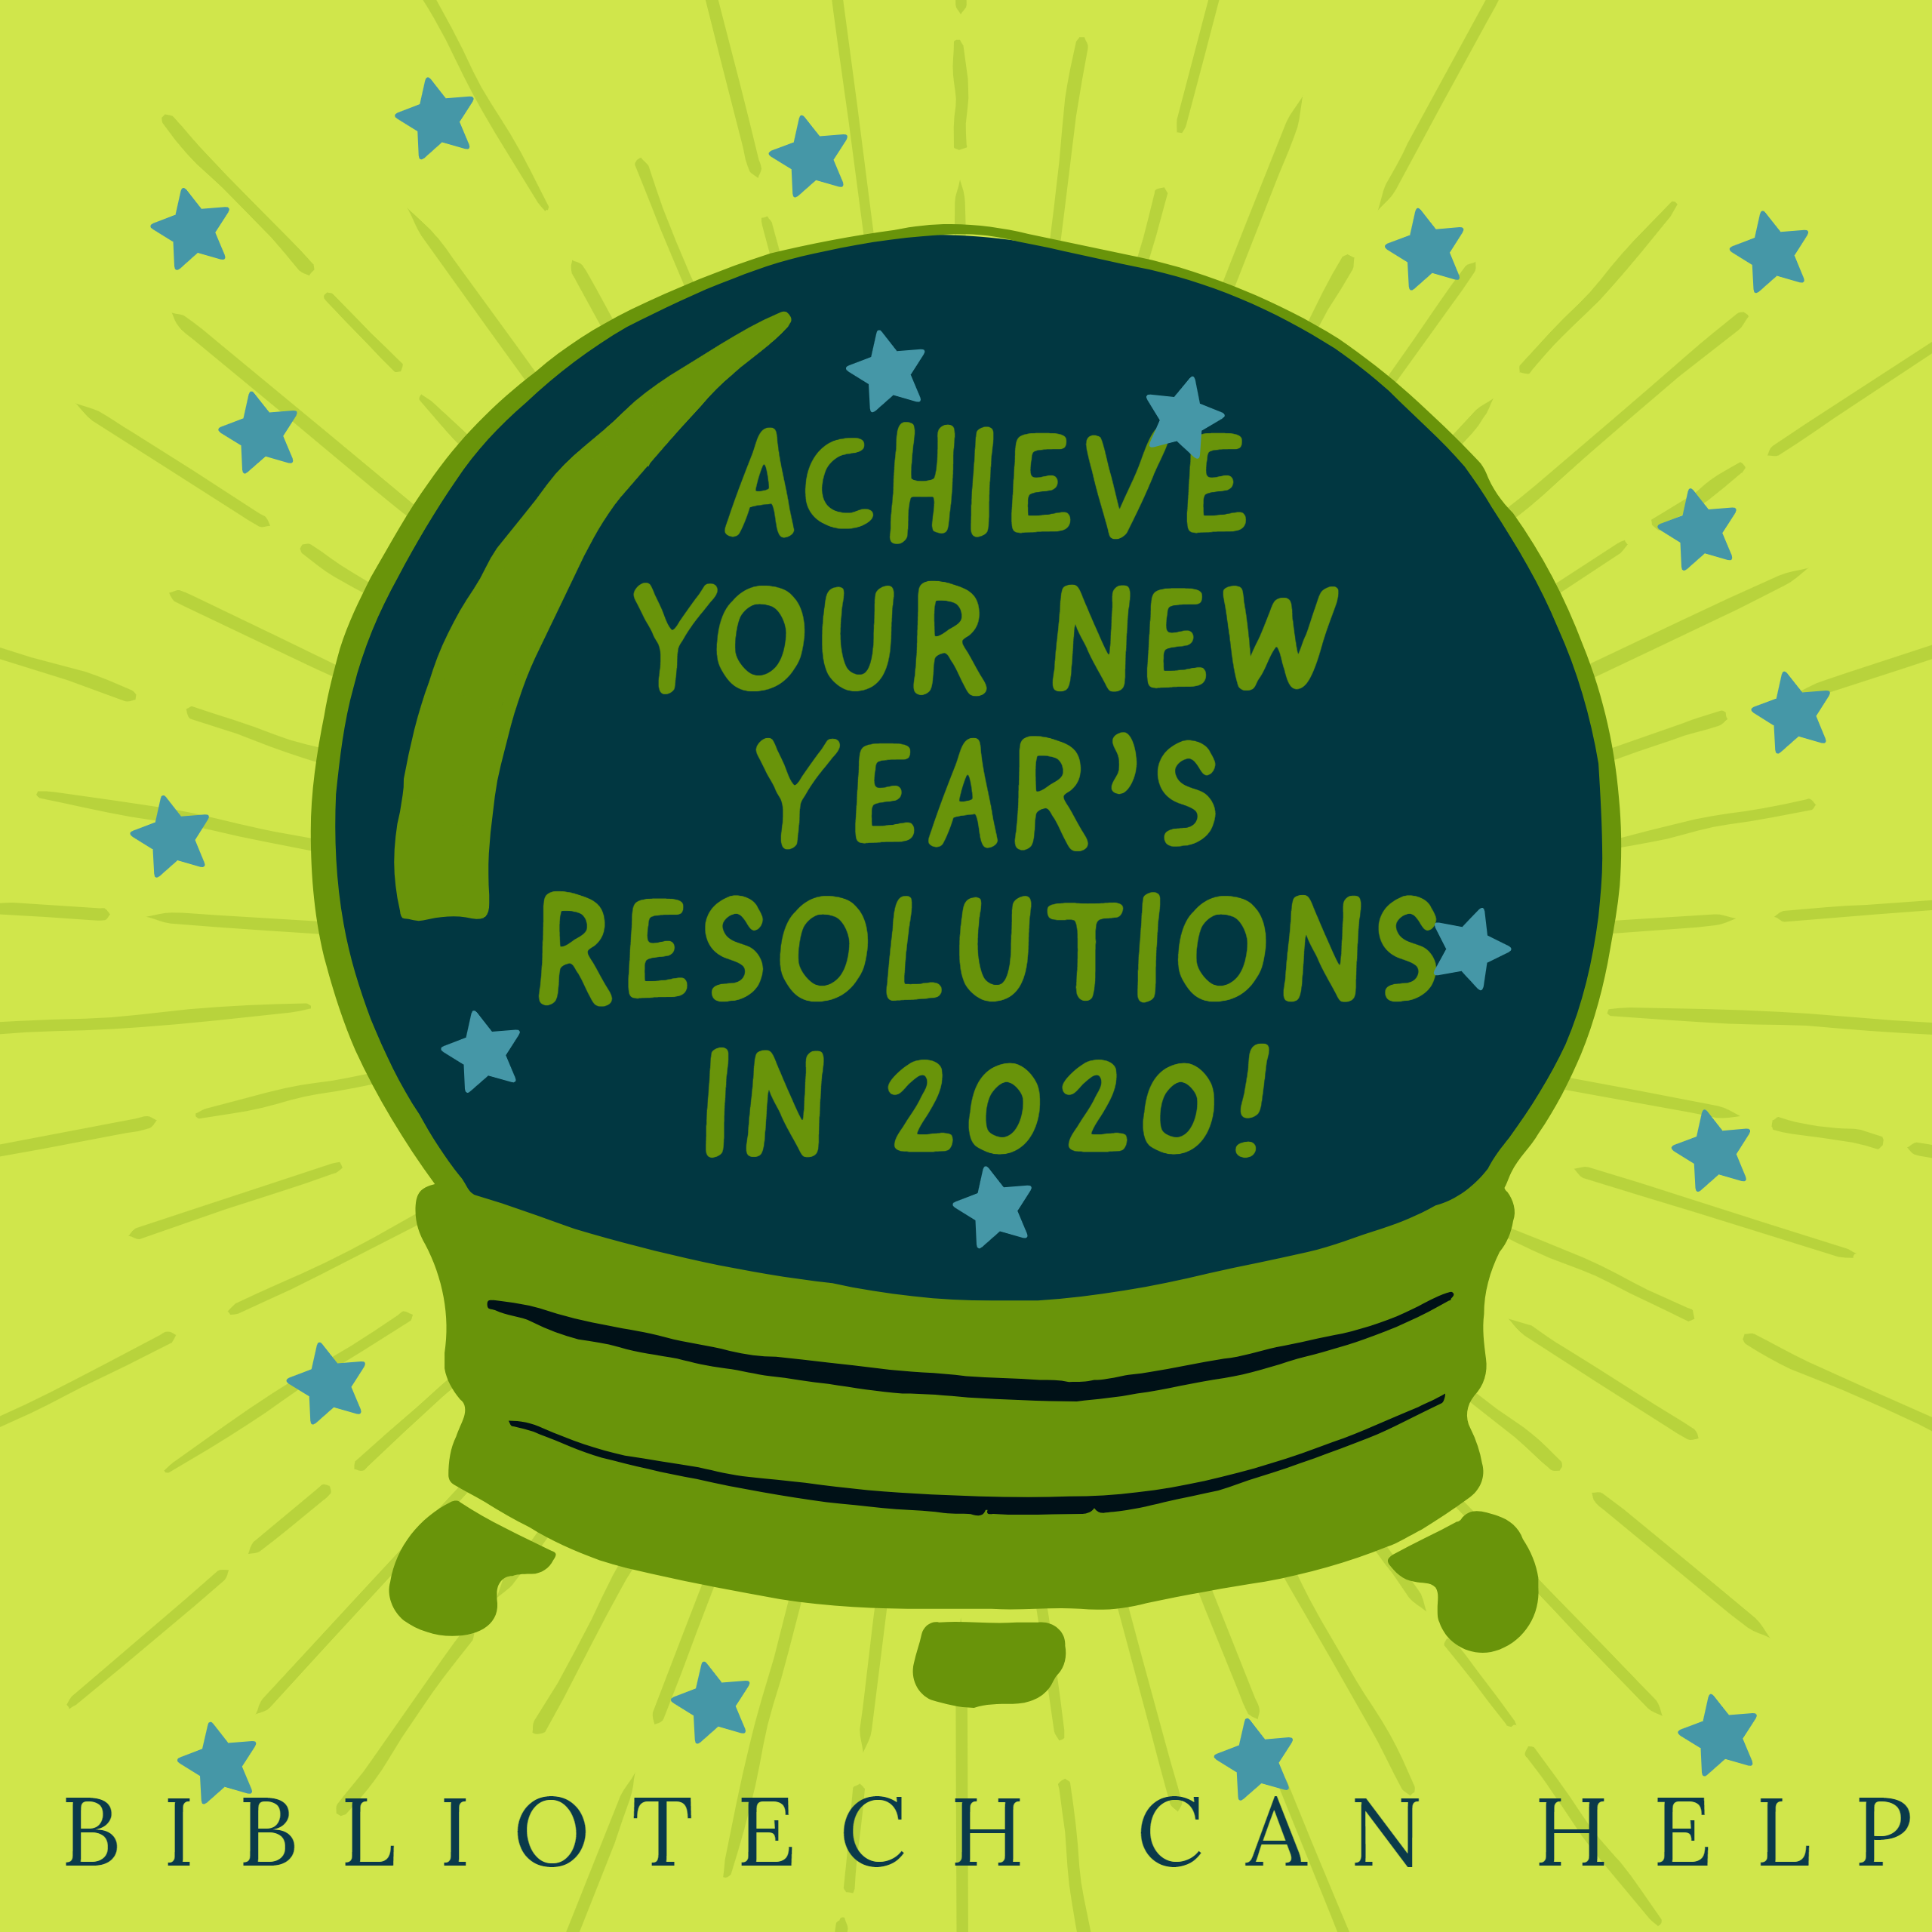 Achieve your 2020 resolutions with BiblioTech